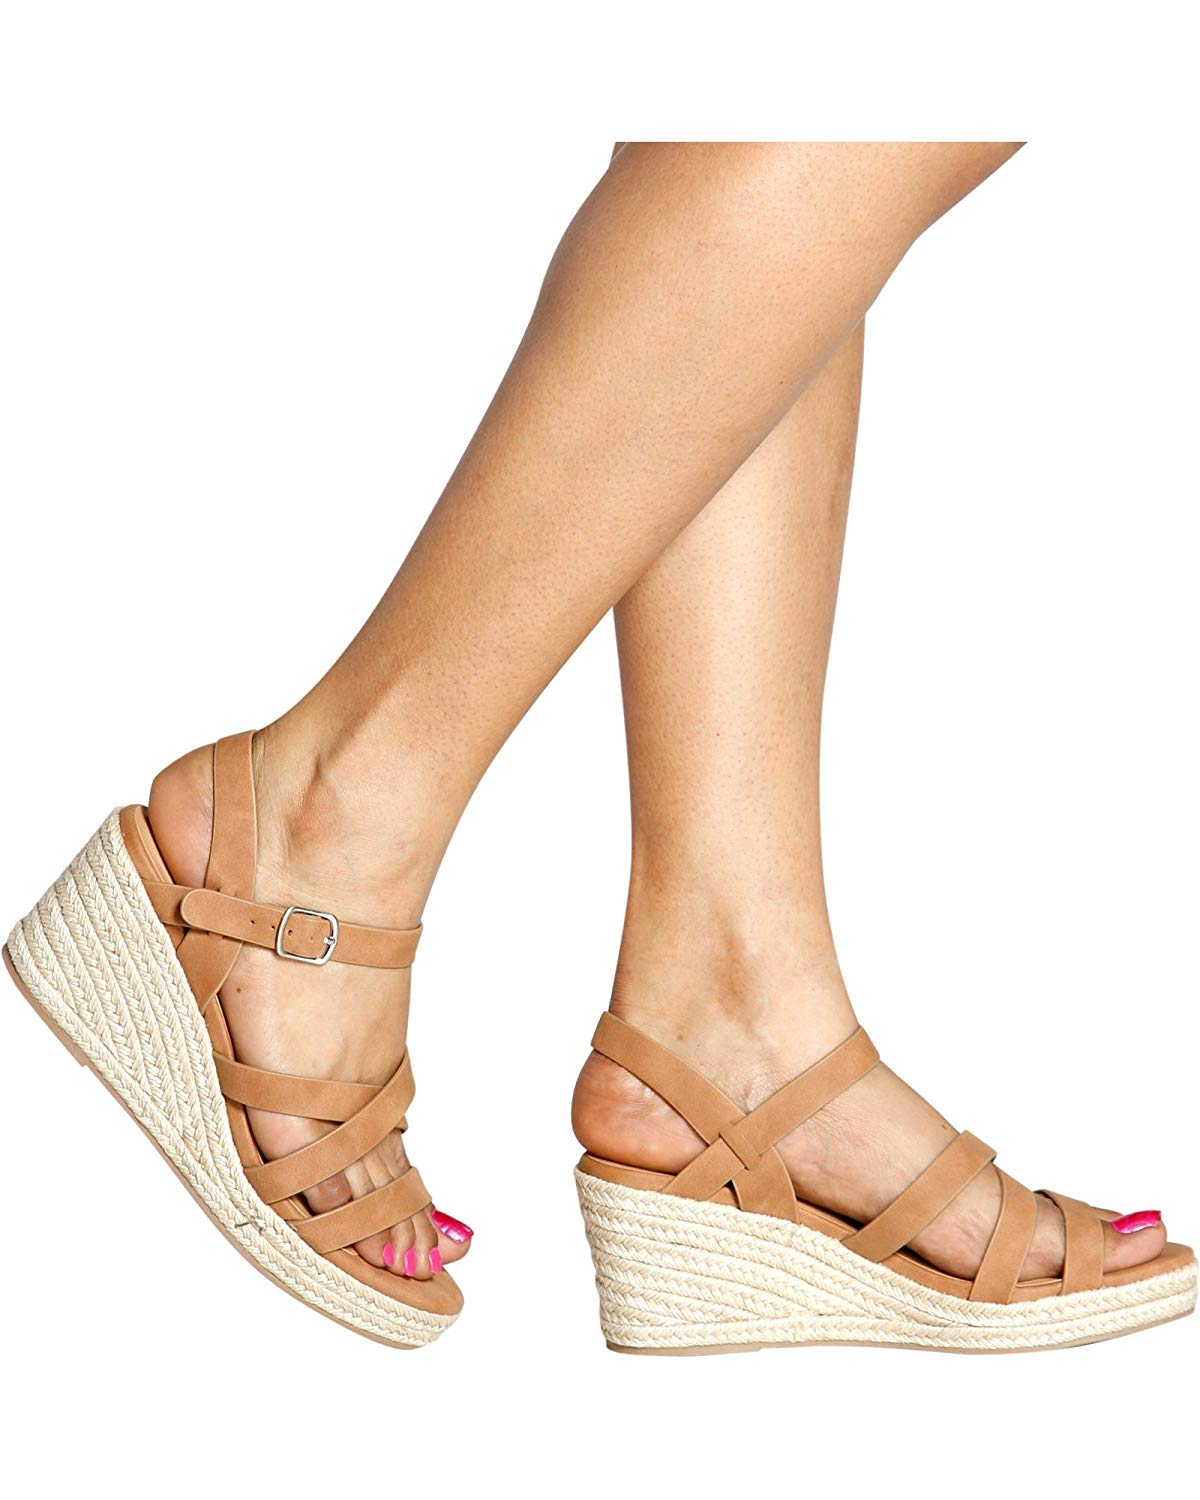 Soda Women's Casual Open Toe Strappy Ankle Strap Espadrille Wedges